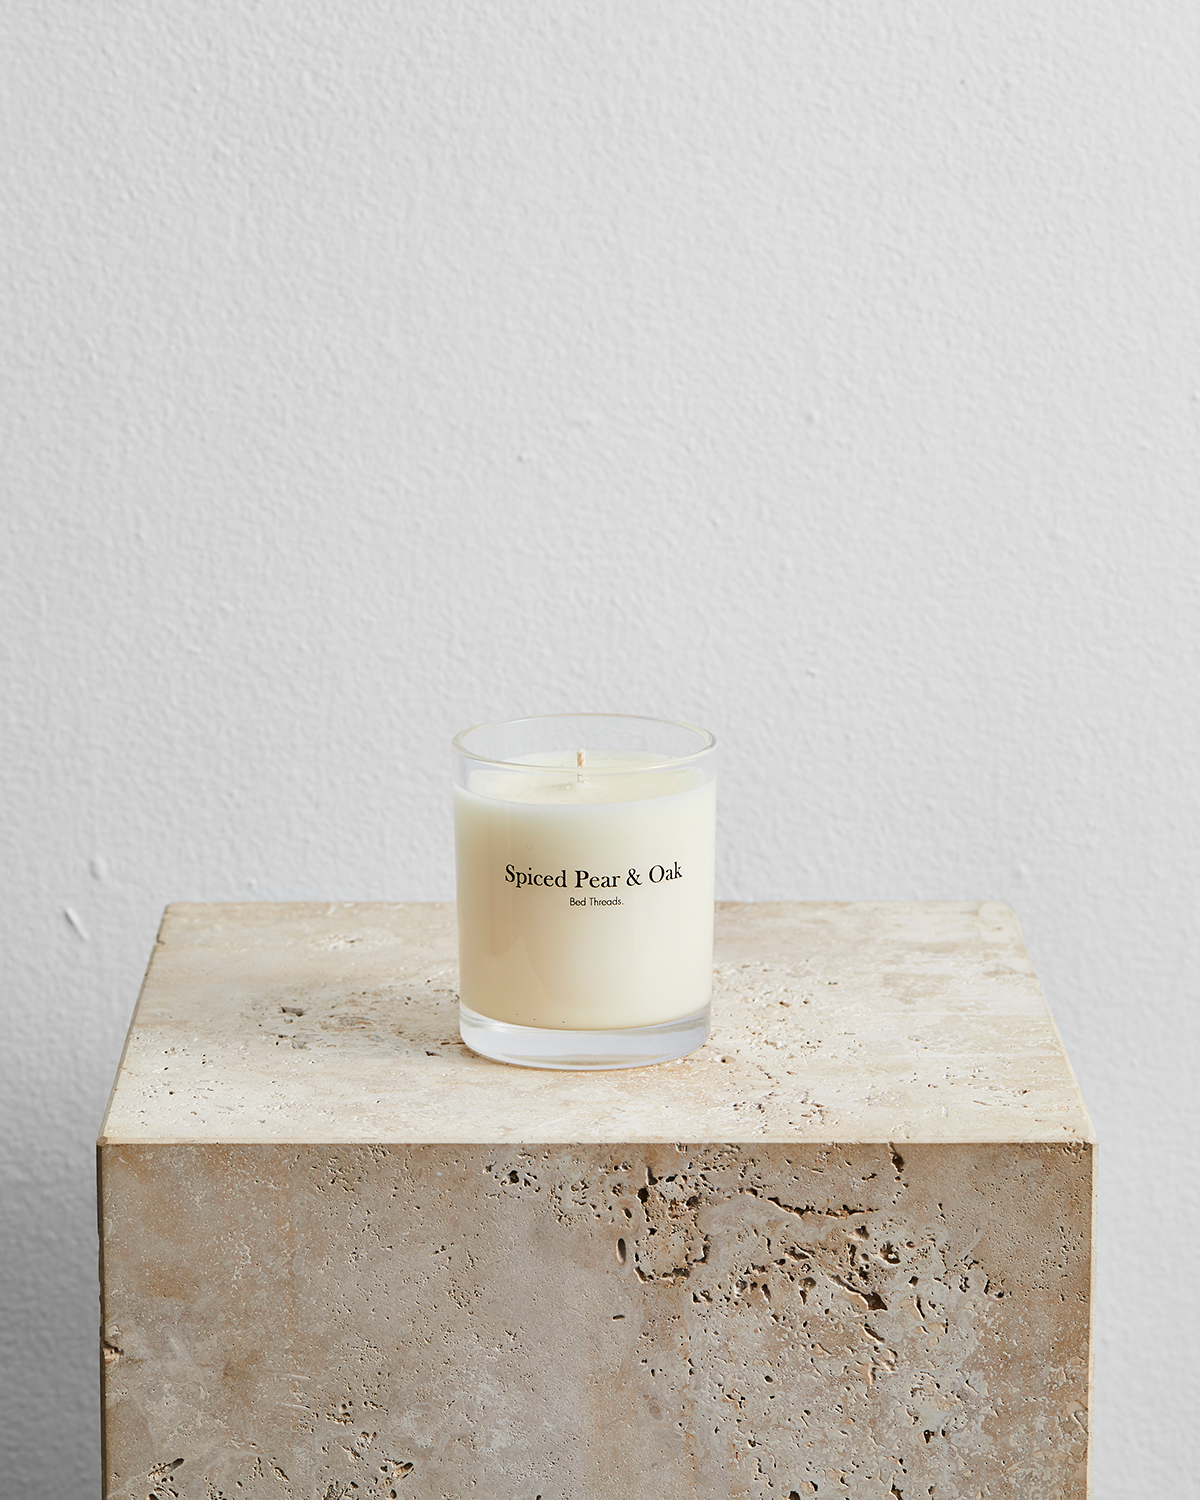 Spiced Pear & Oak Candle by Bed Threads